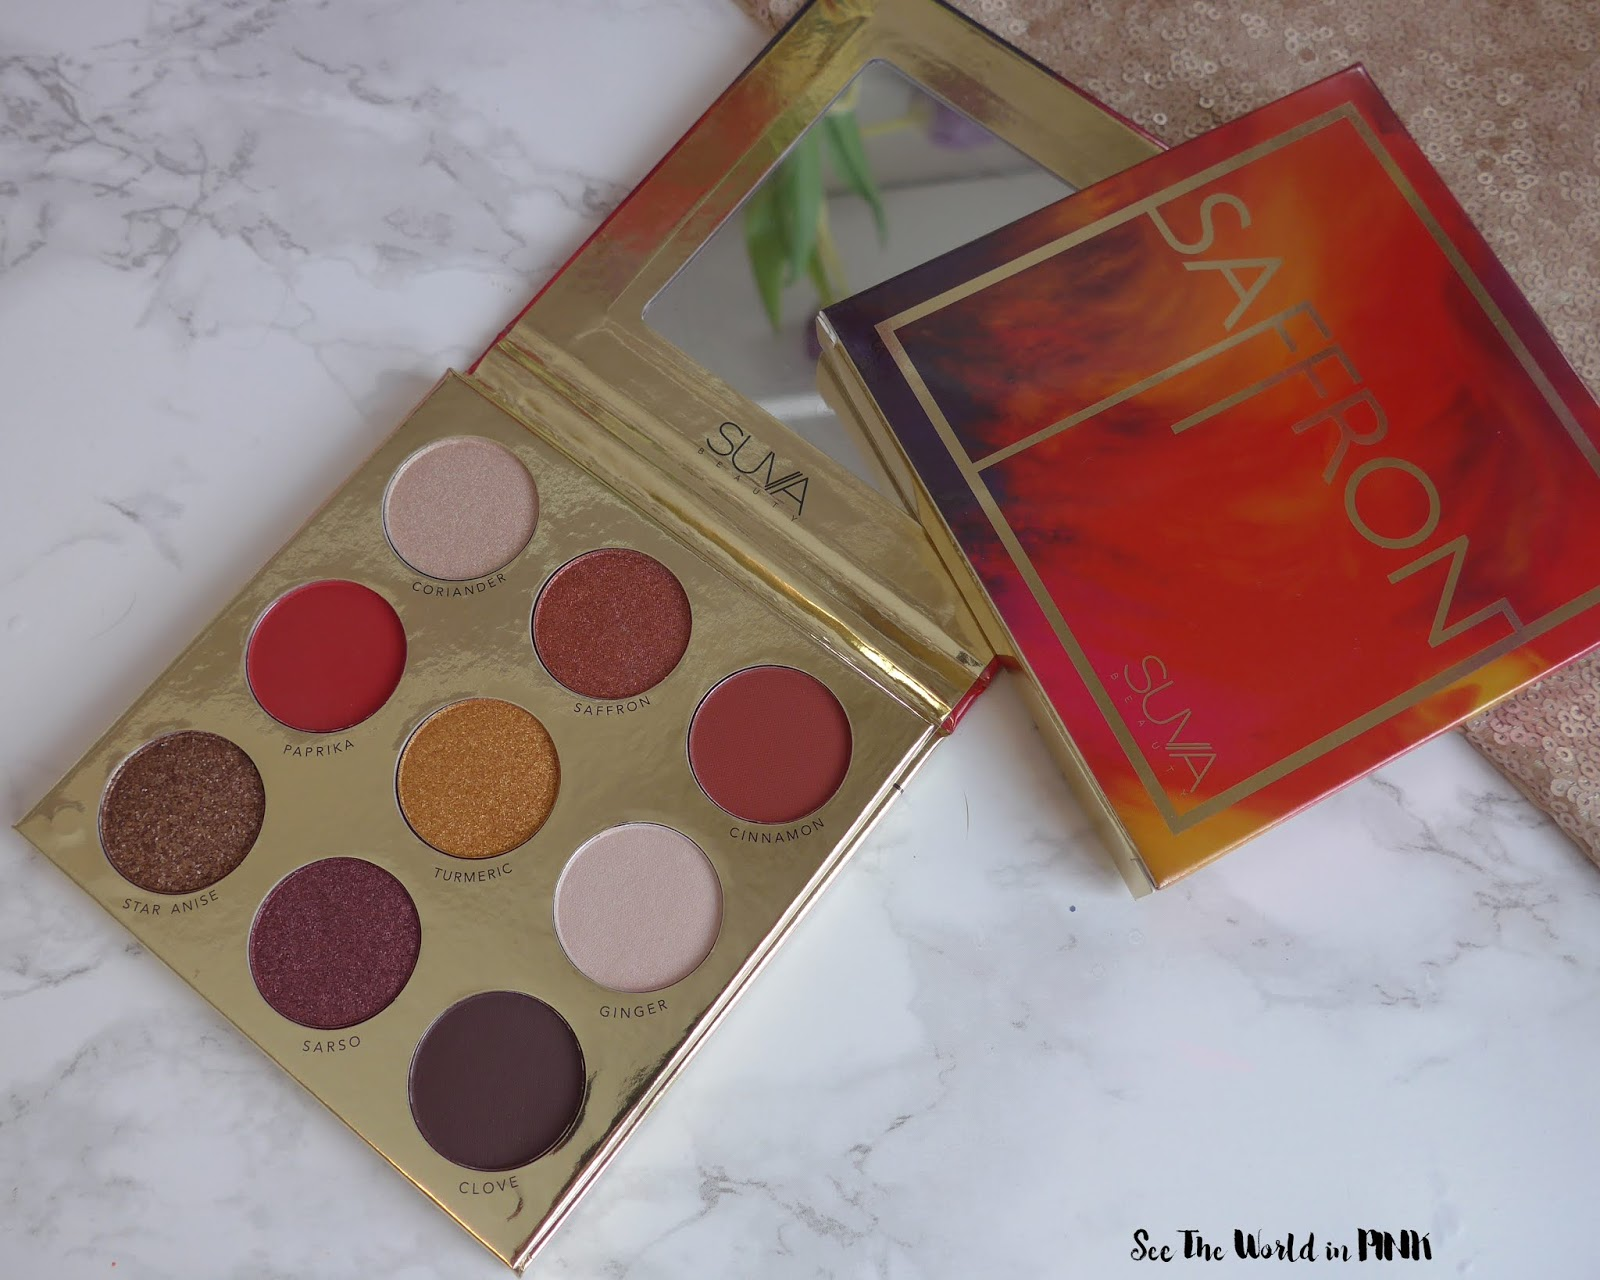 Suva Beauty Saffron Eyeshadow Palette